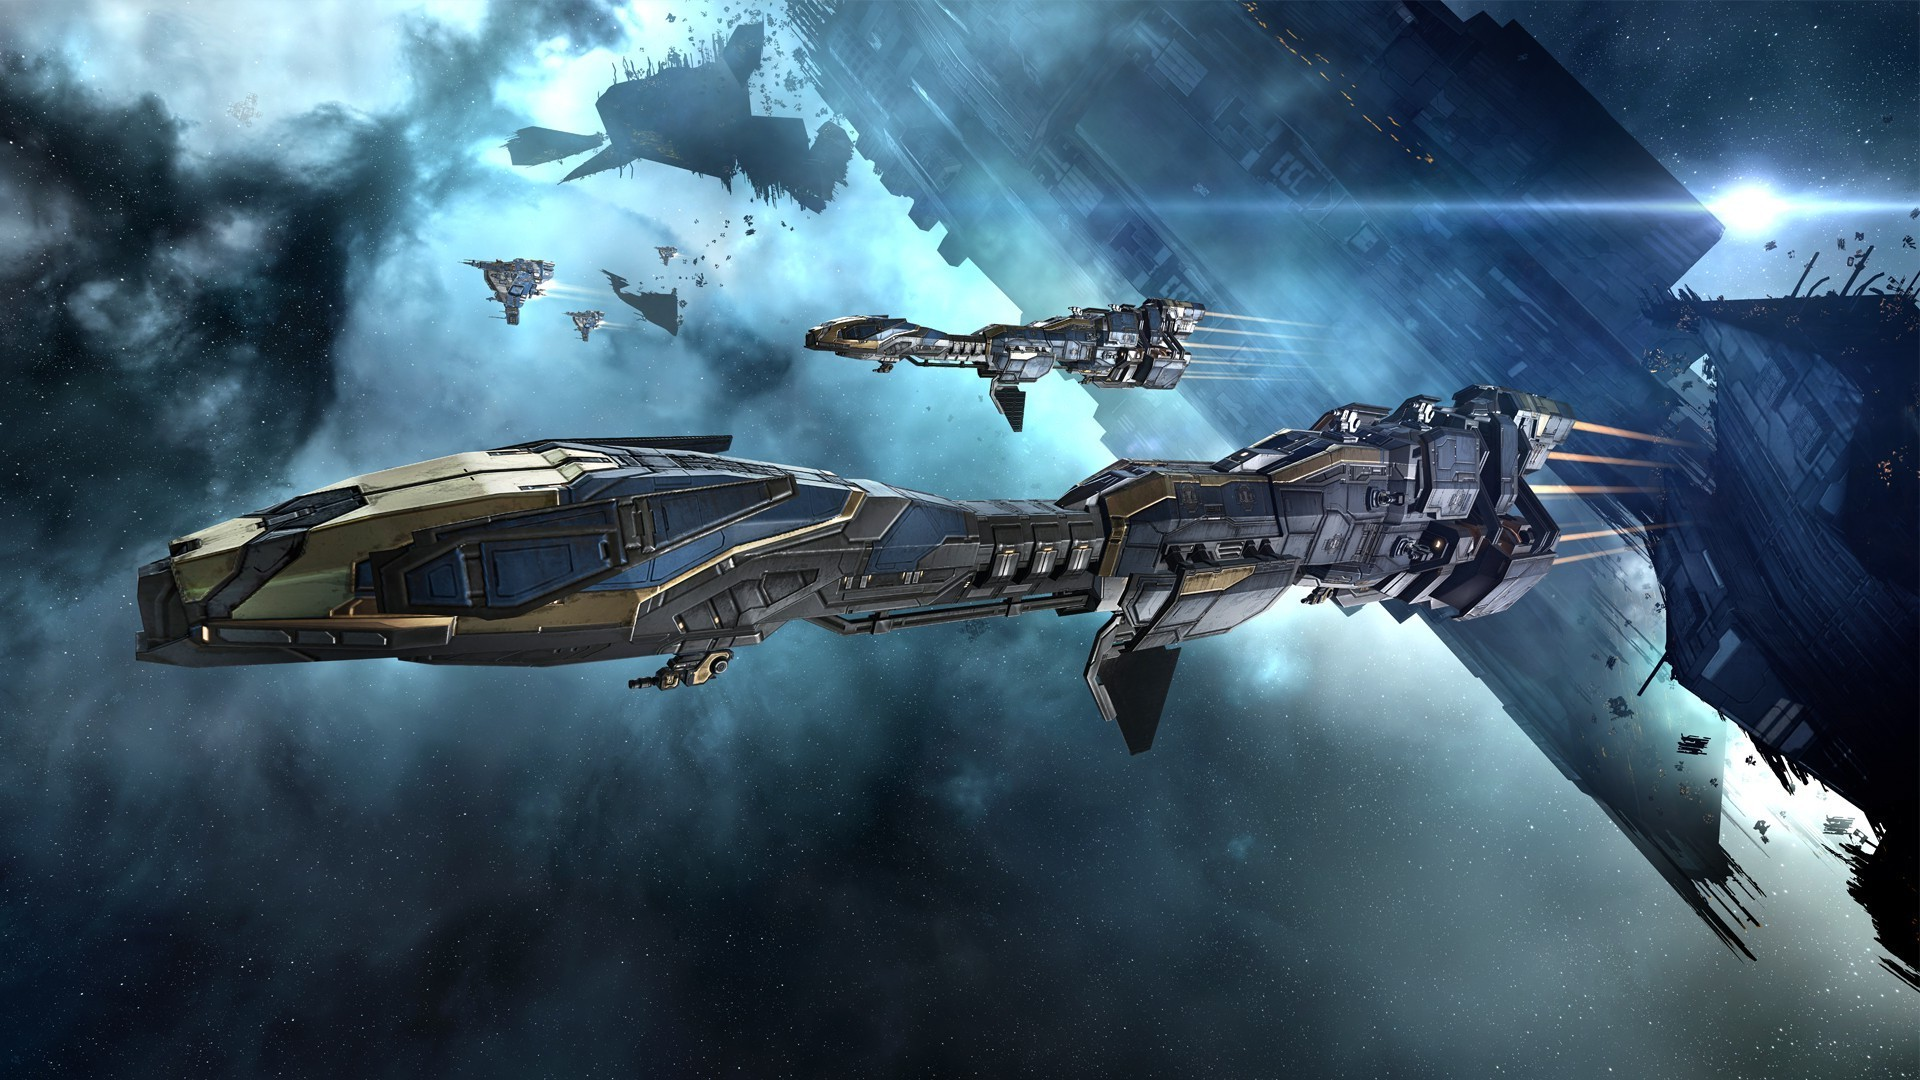 EVE Online, Minmatar, Video Games, Spaceship, Concept Art, Science Fiction,  Space, Stabber Cruiser Wallpapers HD / Desktop and Mobile Backgrounds